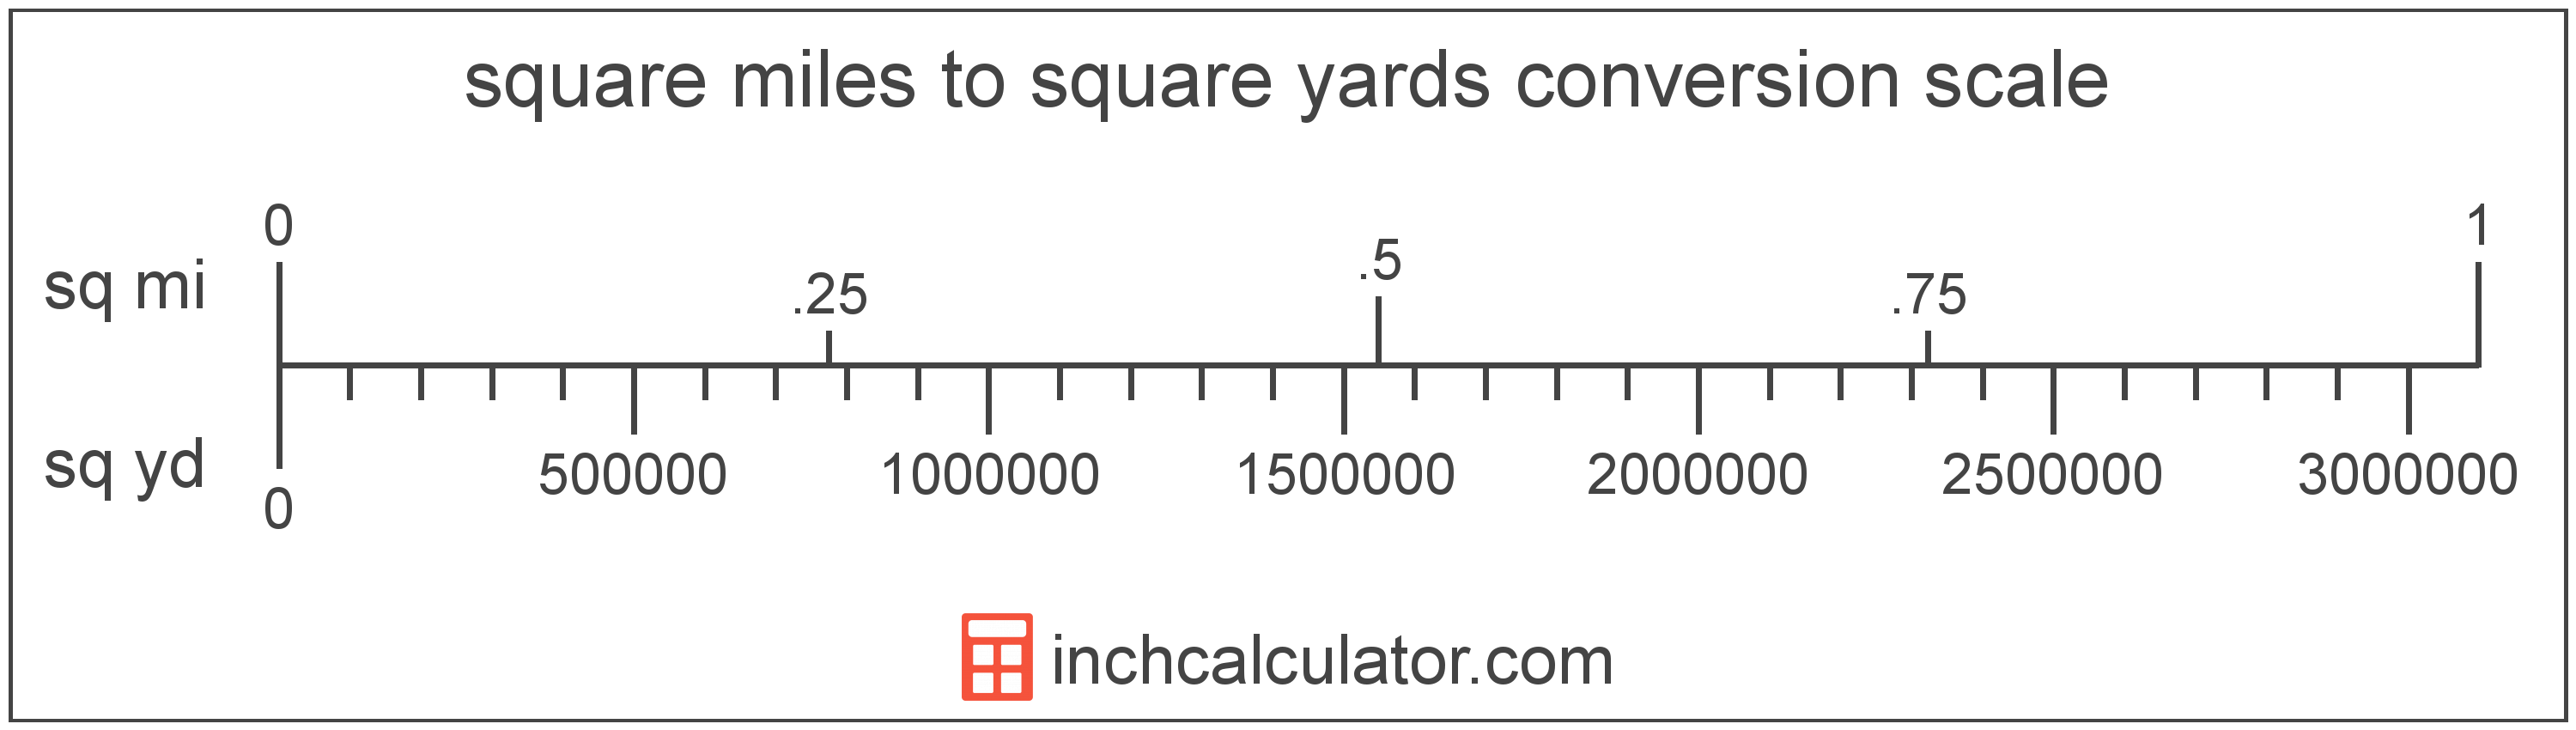 conversion scale showing square miles and equivalent square yards area values